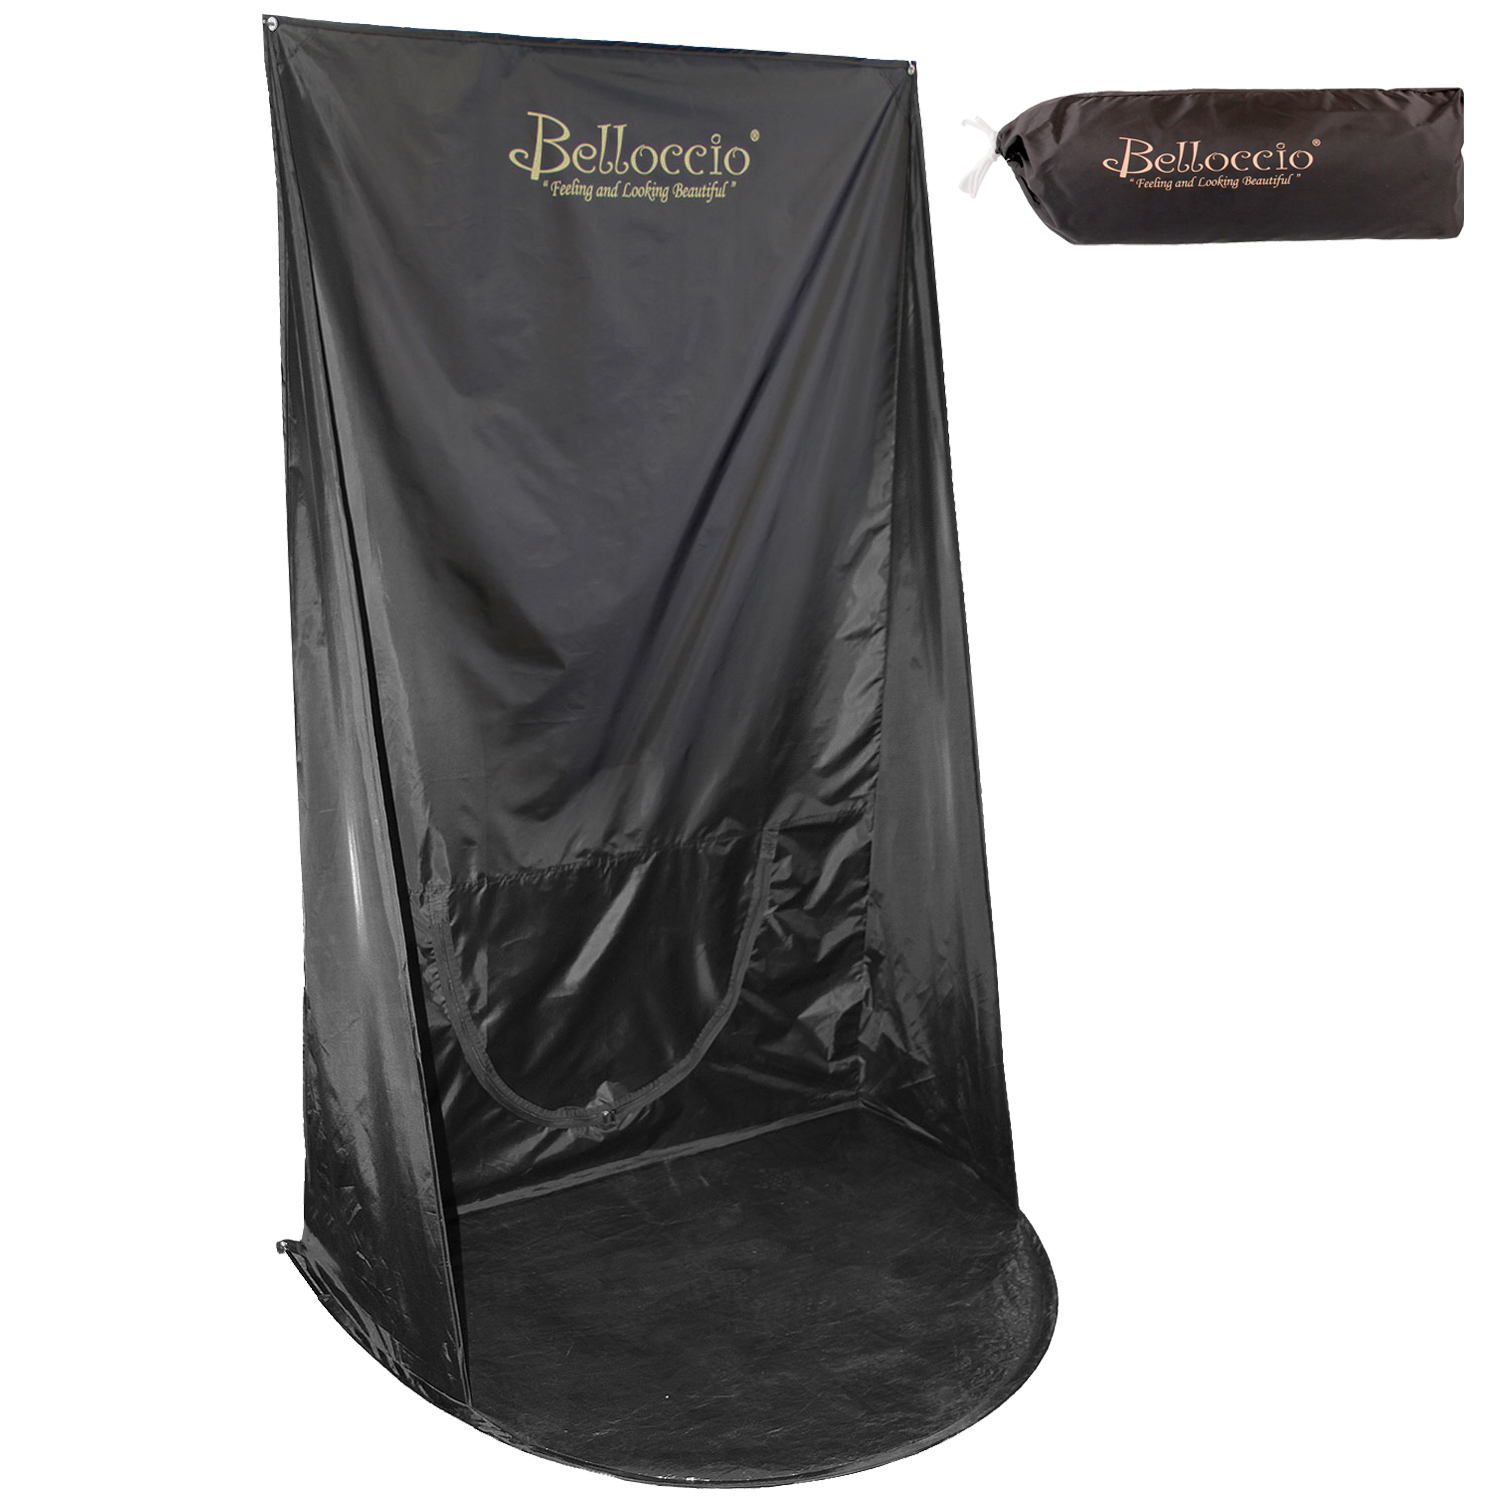 Belloccio Airbrush Sunless Spray Tanning Curtain Backdrop